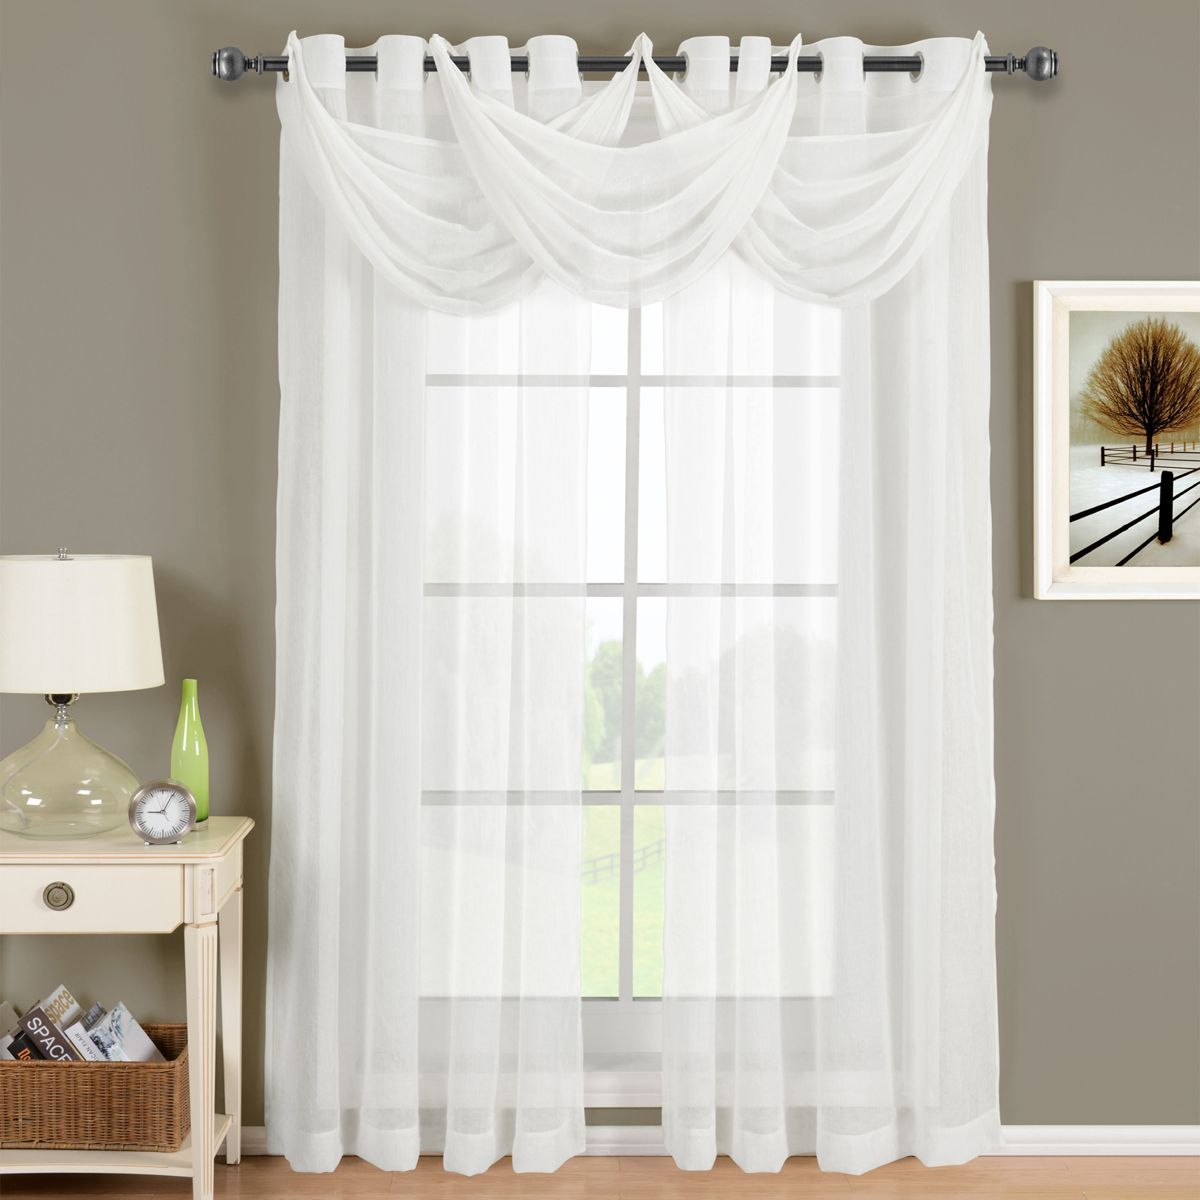 Beautiful Sheer Curtains With Sheer White Curtains And Jcpenney